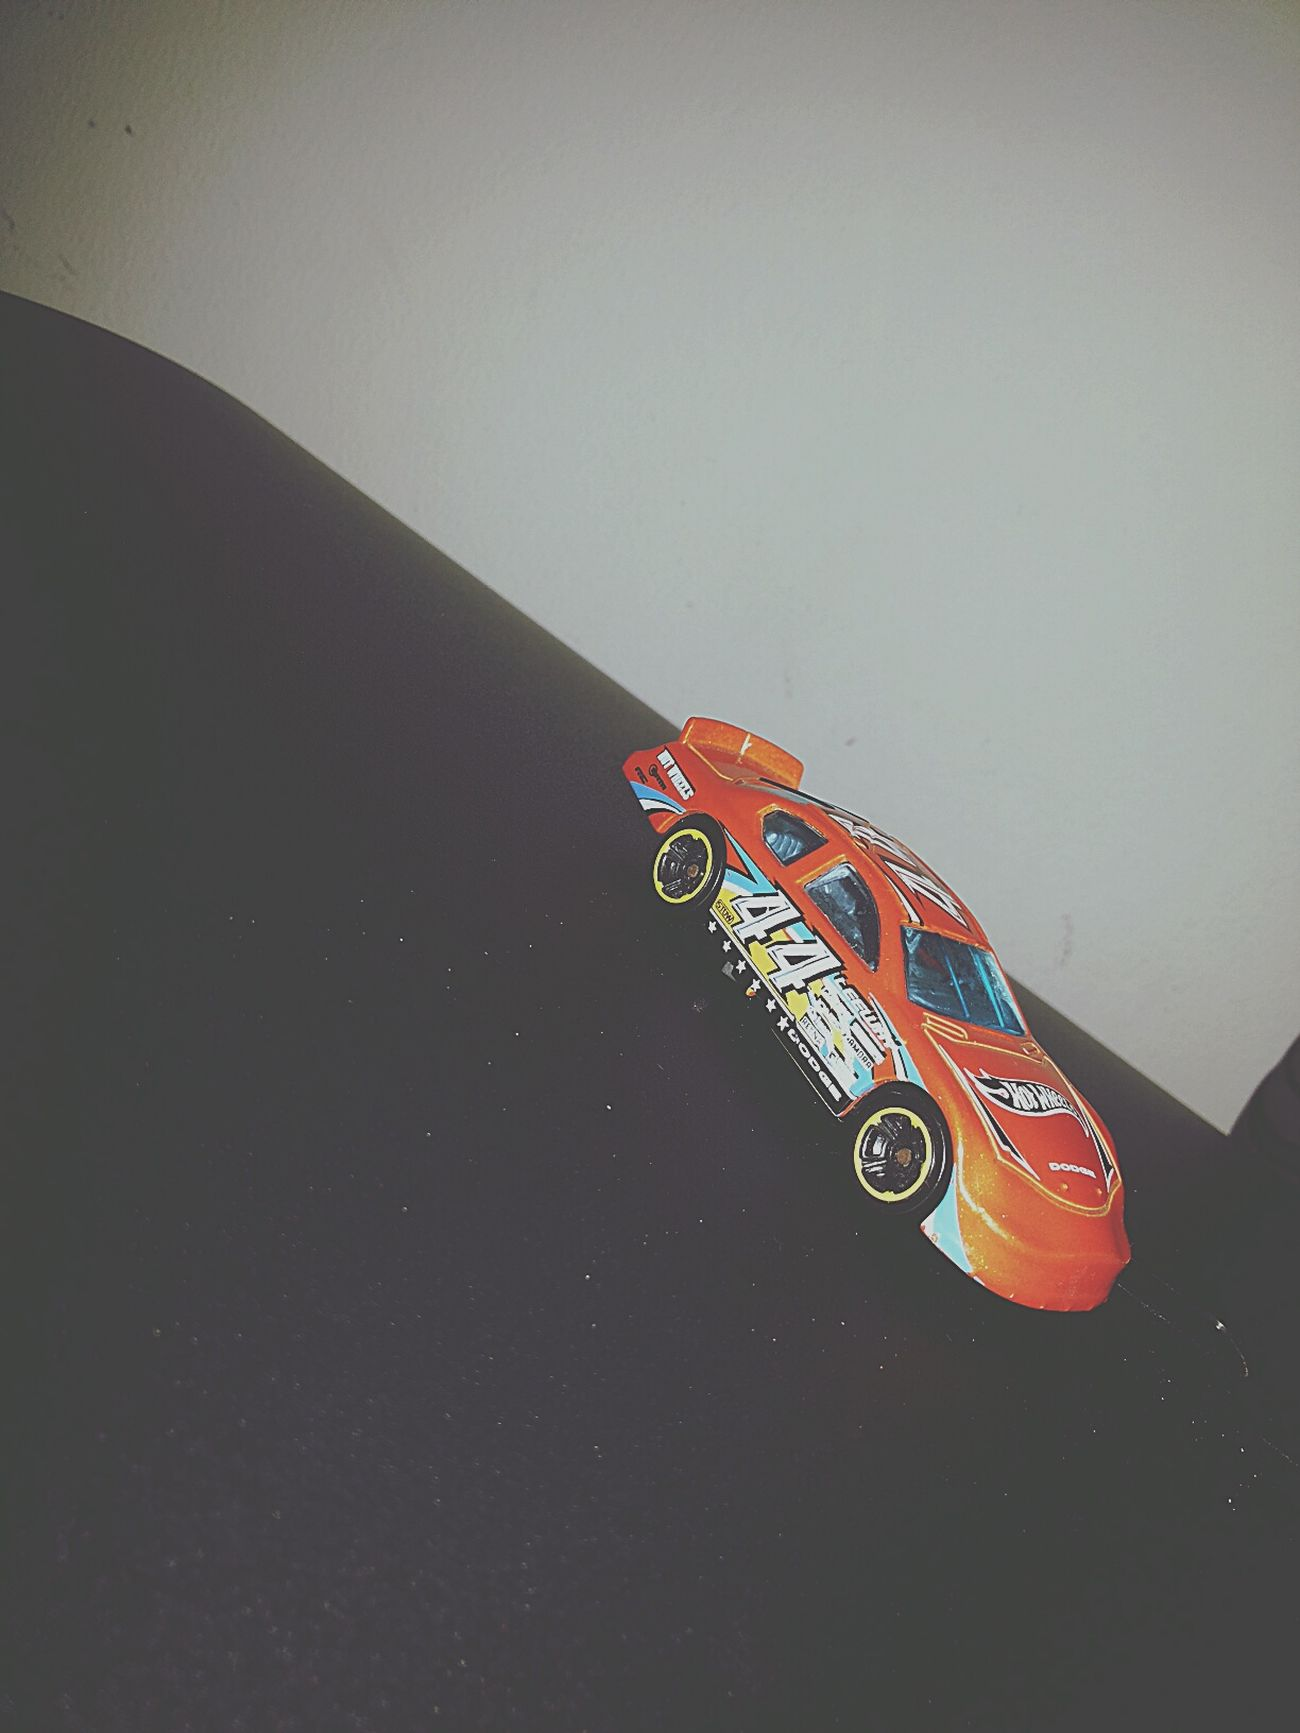 Dodge Charger Taking Photos Photoshotsatnight Hanging Out Photography Dodge Charger HotWheels